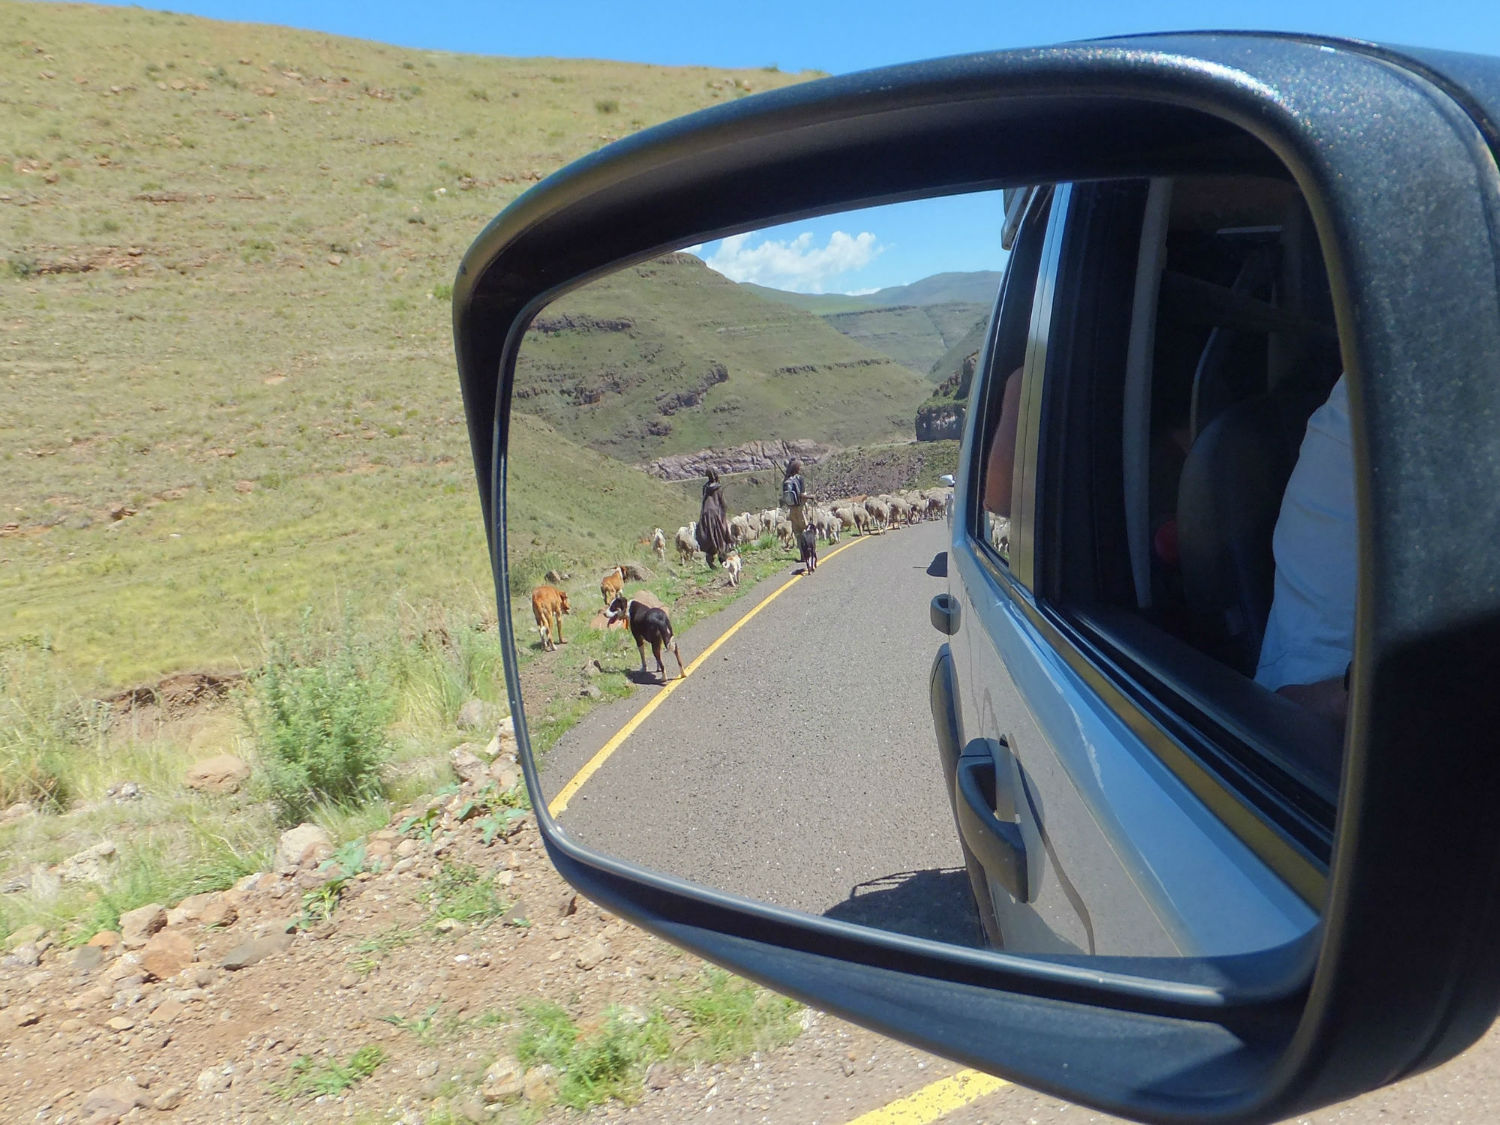 Basotho Shepherds in Lesotho, roads in Lesotho with South Africa Overland 4x4 Tours